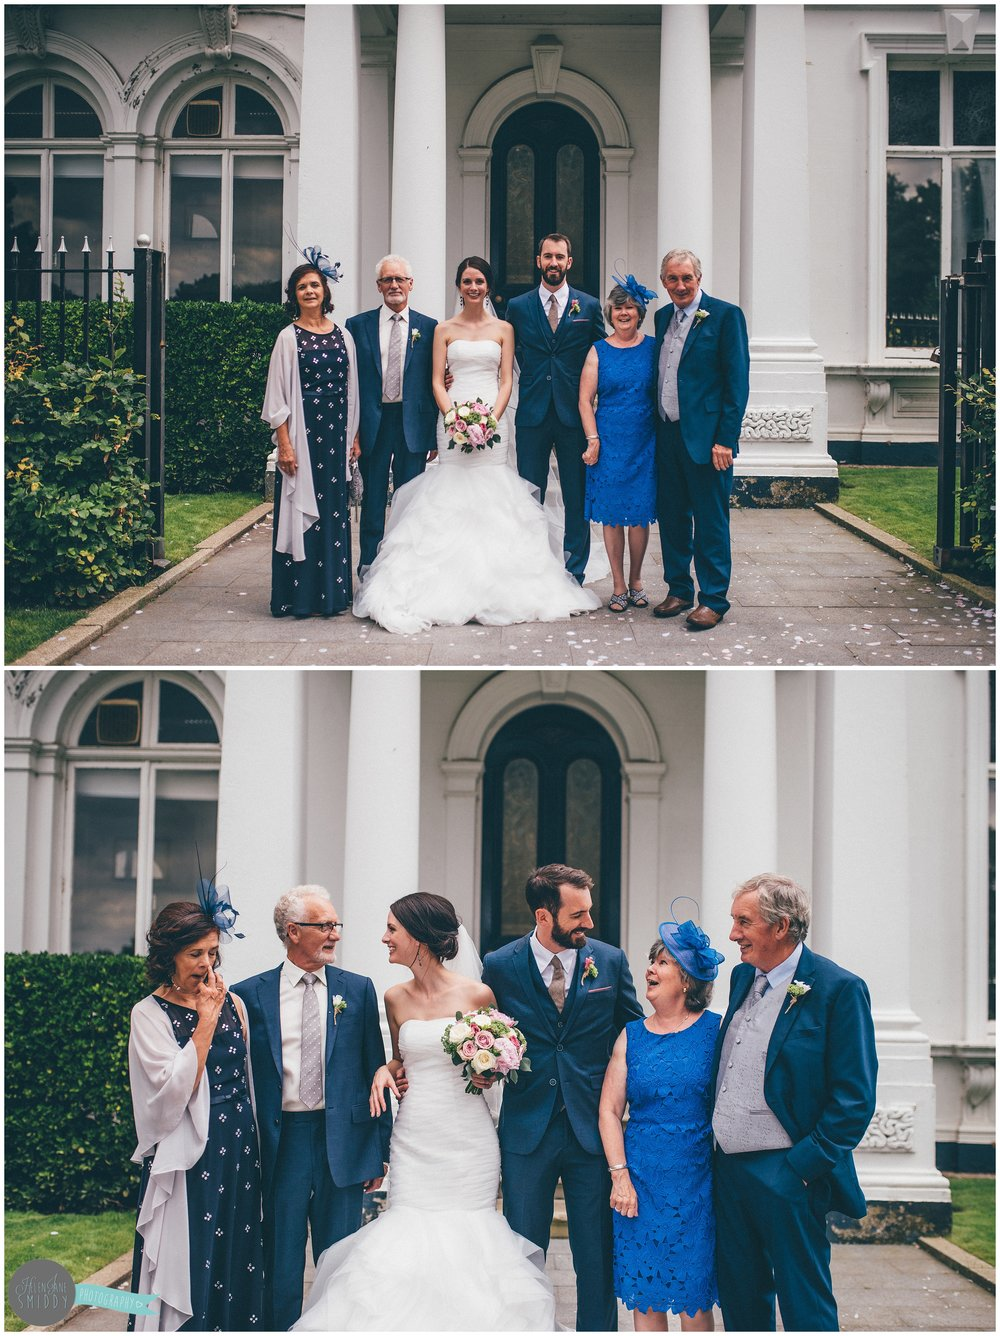 cheshire-runcorn-town-hall-chester-chesterfields-wedding-weddingphotography-photography-blue-skies-love-wedding-day-weddingday-wedding-gown-weddingdress-flowers-guest-manofhonour-maidofhonour-confetti